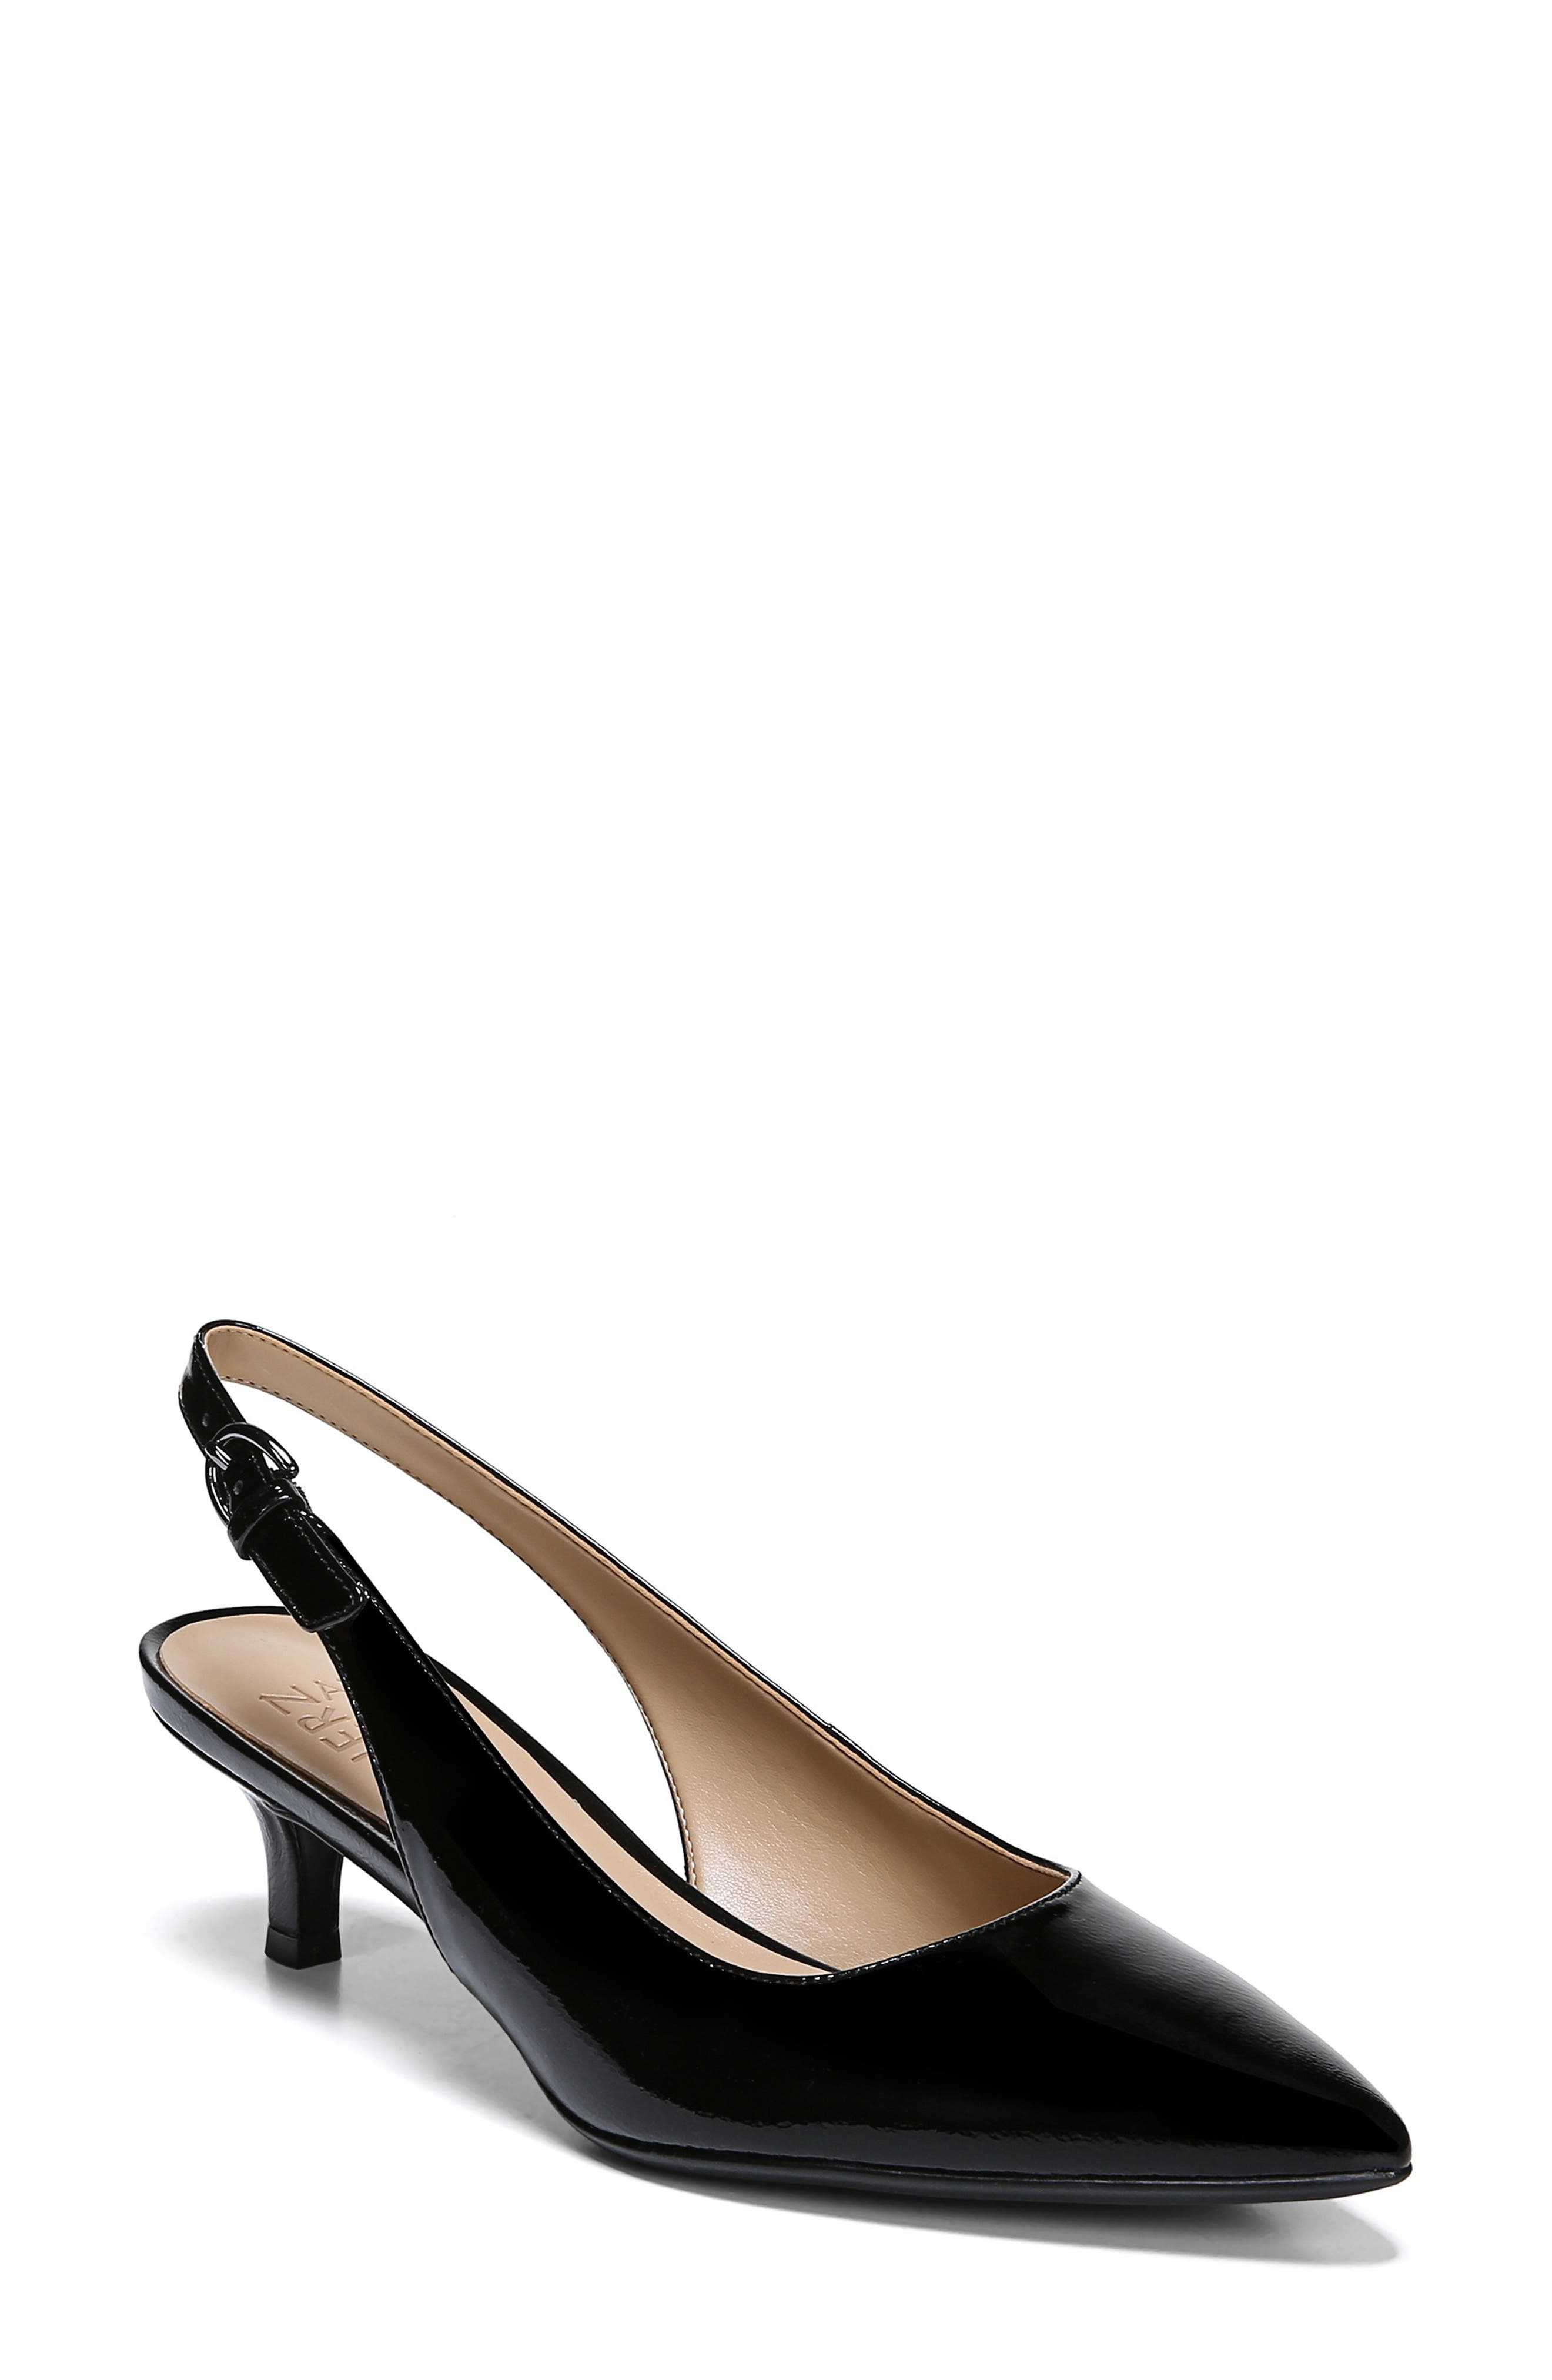 Peyton Slingback Pump, Main, color, BLACK PATENT LEATHER